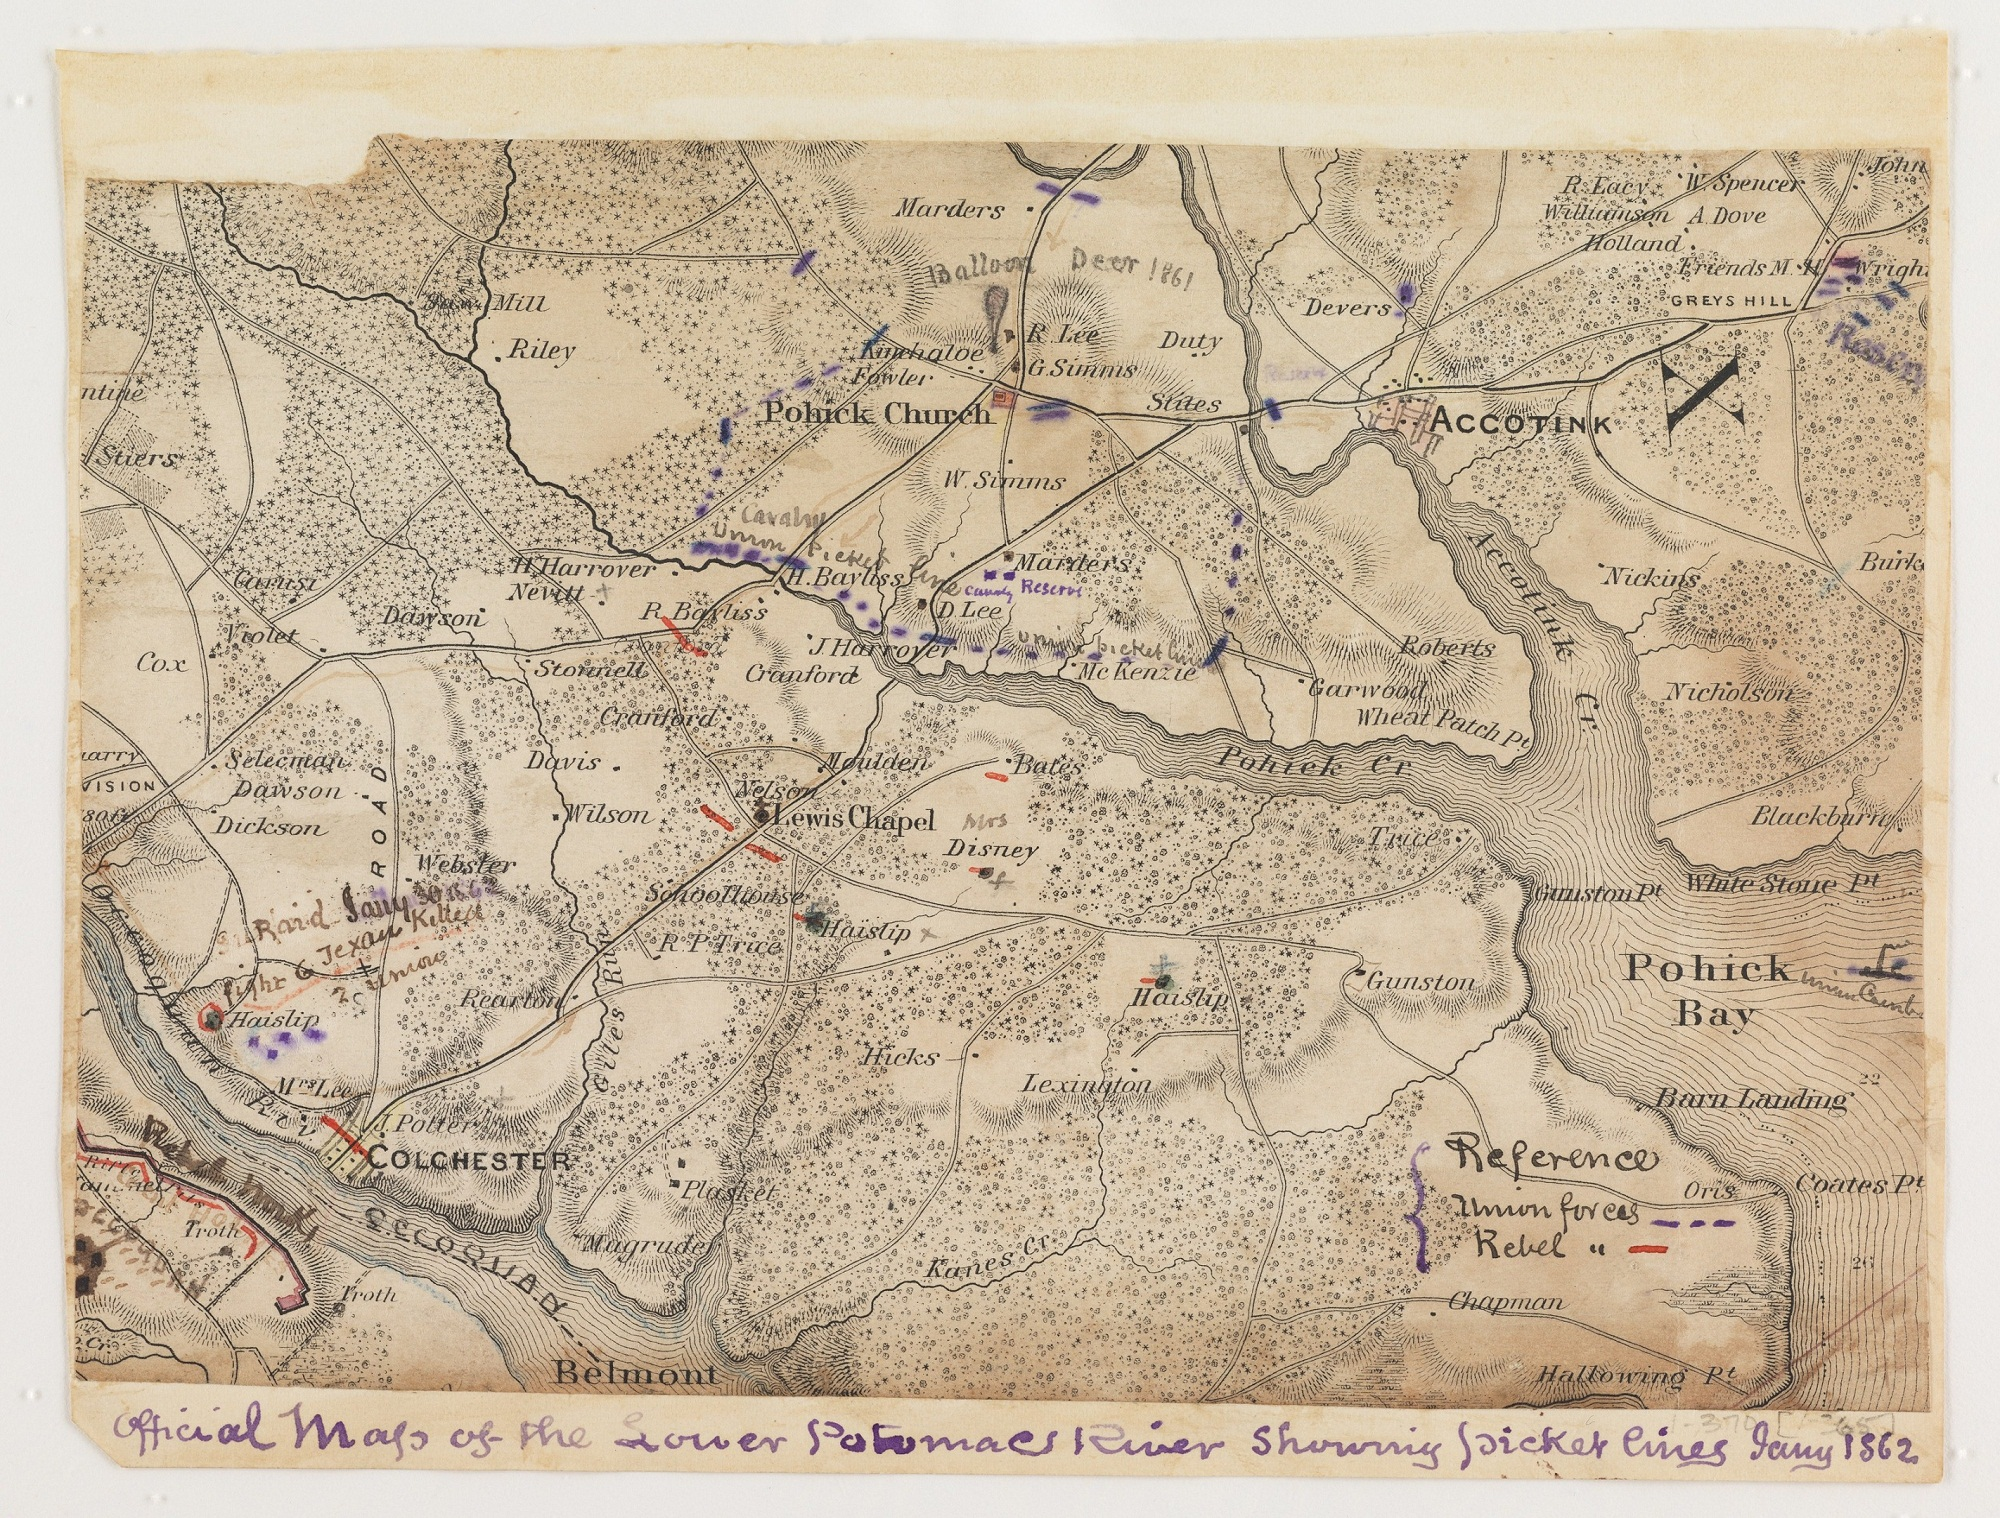 Civil War Maps At The Library Of Congress Mapping The